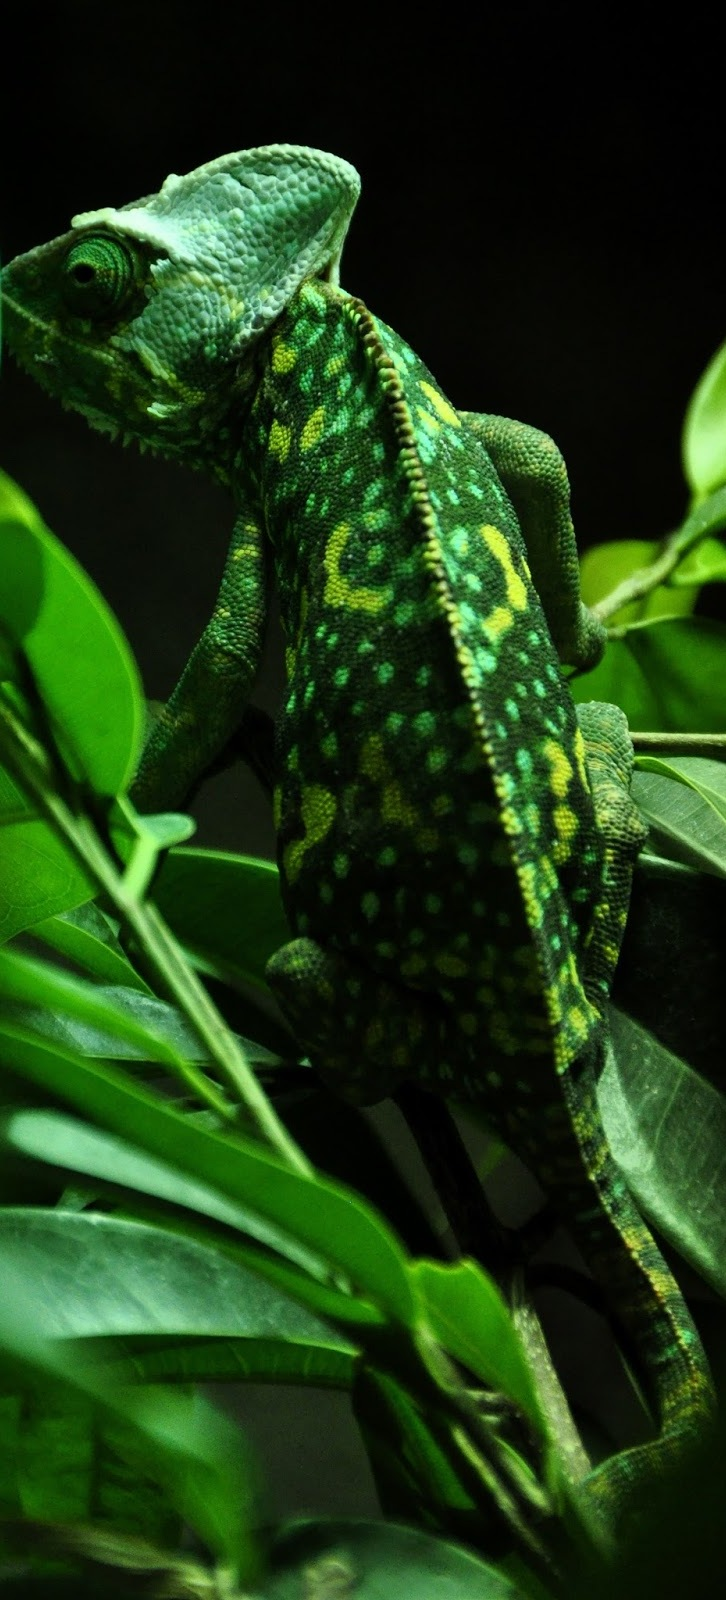 Picture of a green chameleon.